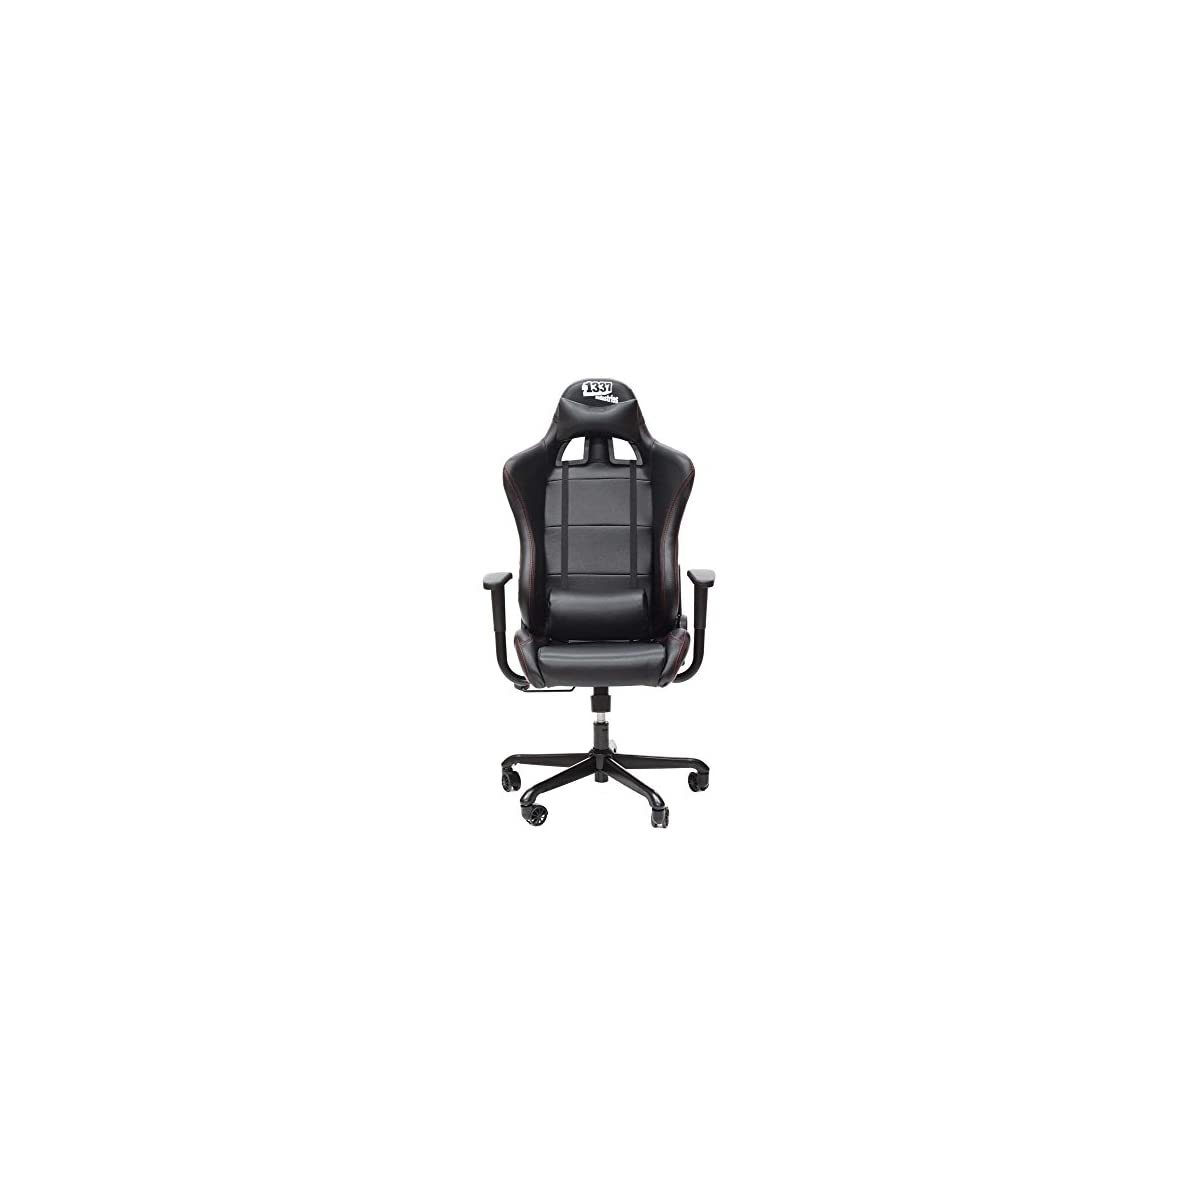 41 7fJoYJ3L. SS1200  - 1337 Industries GC707 - Sillón para Gaming (PVC, PU), Color Negro